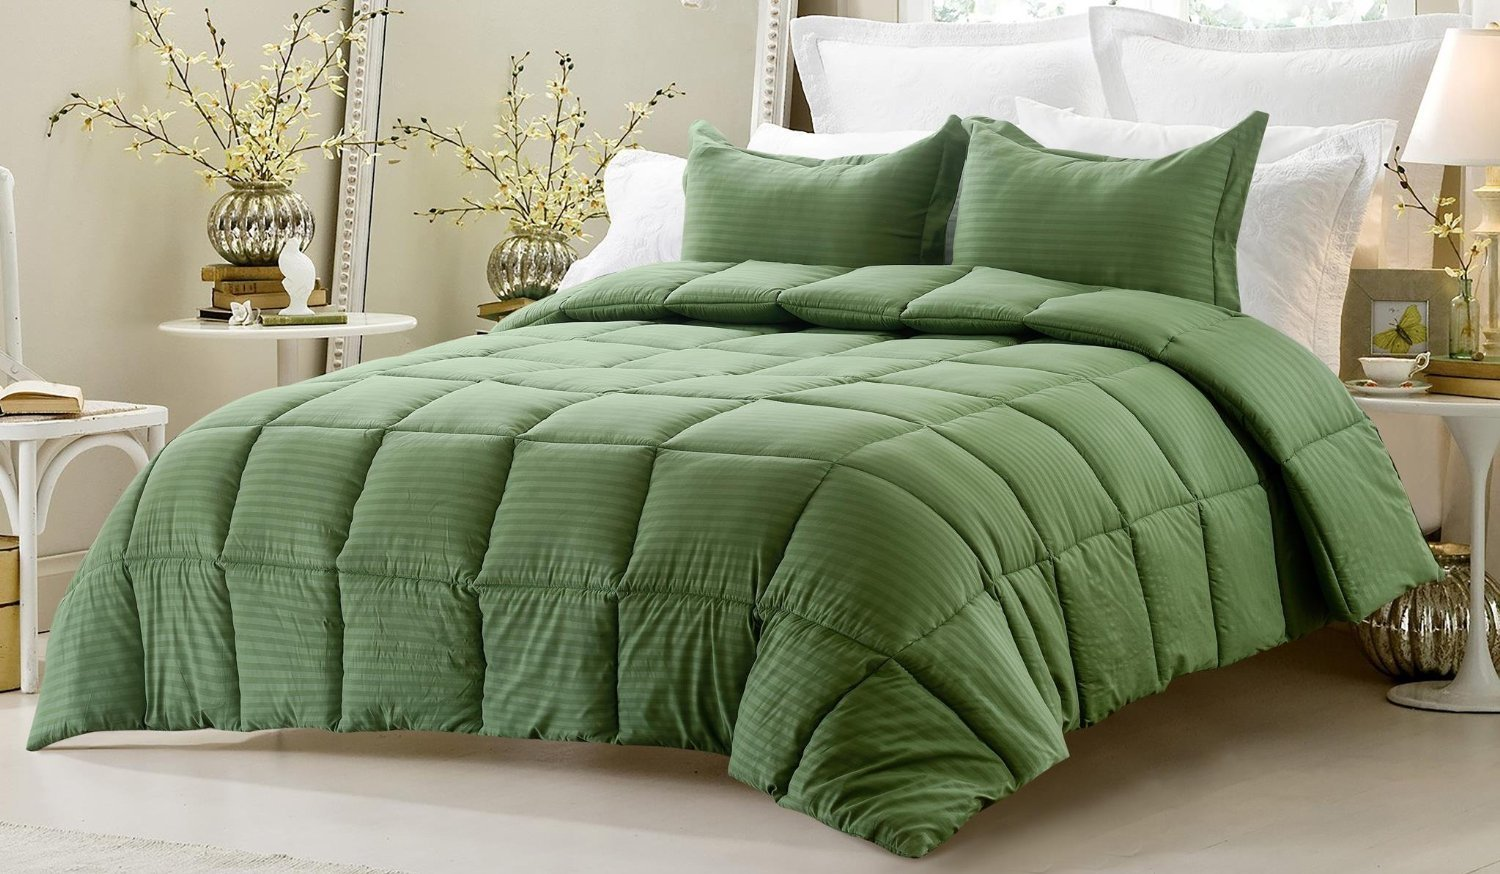 new dp home set uk co kitchen bed kingsize bedding linen white green ruffles cover duvet amazon